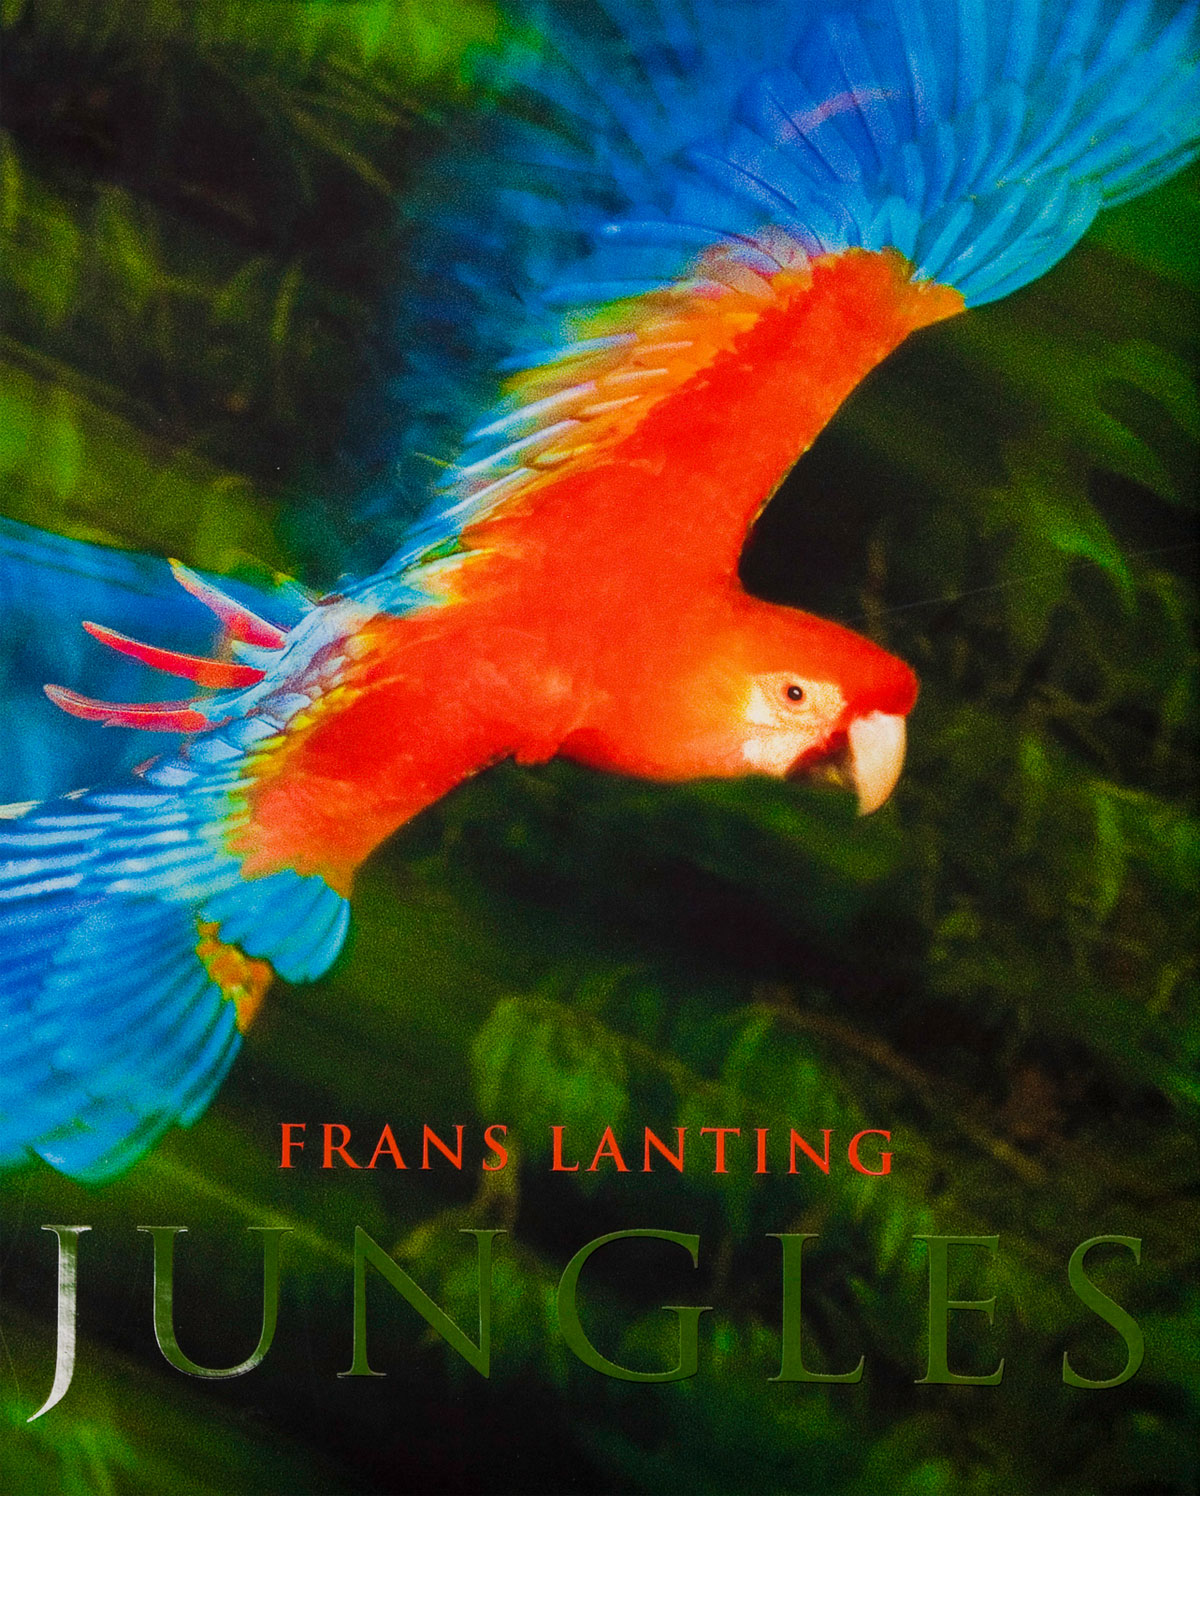 Lanting Jungles Book Cover